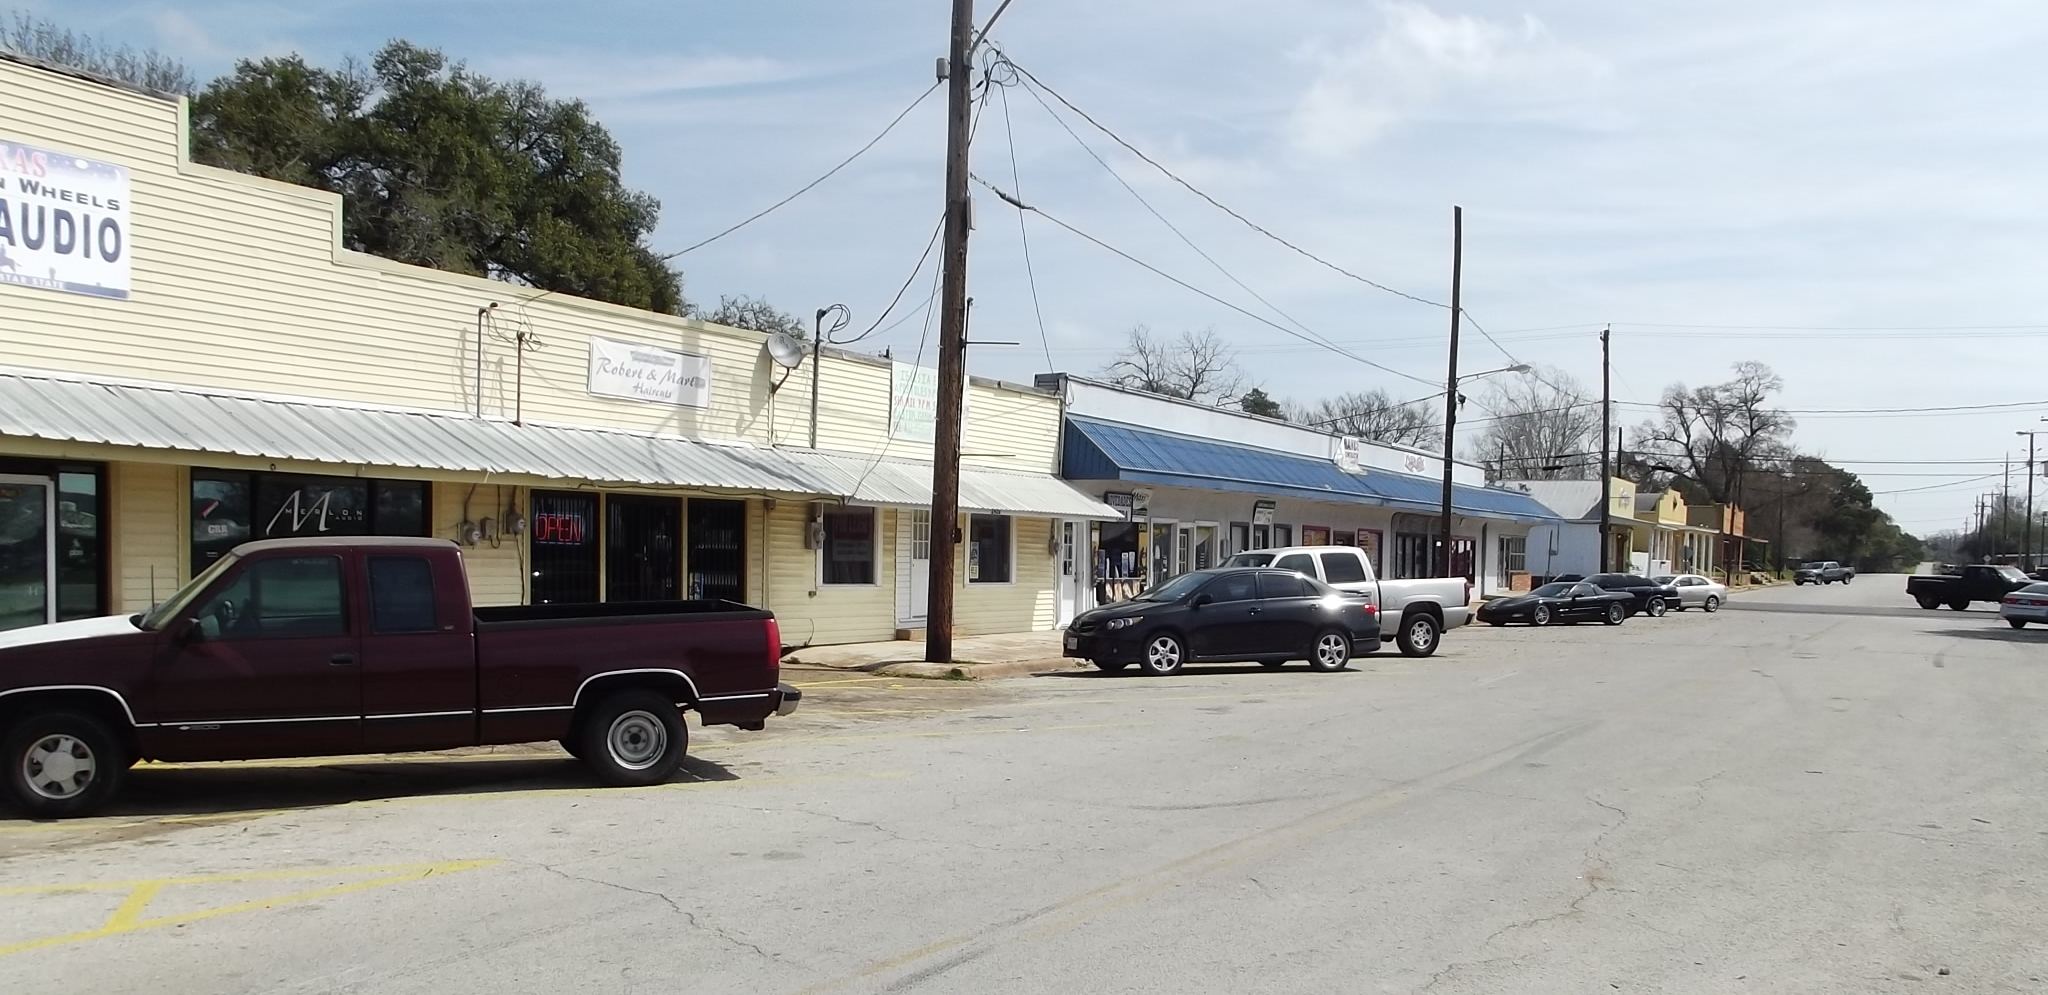 Downtown Waller